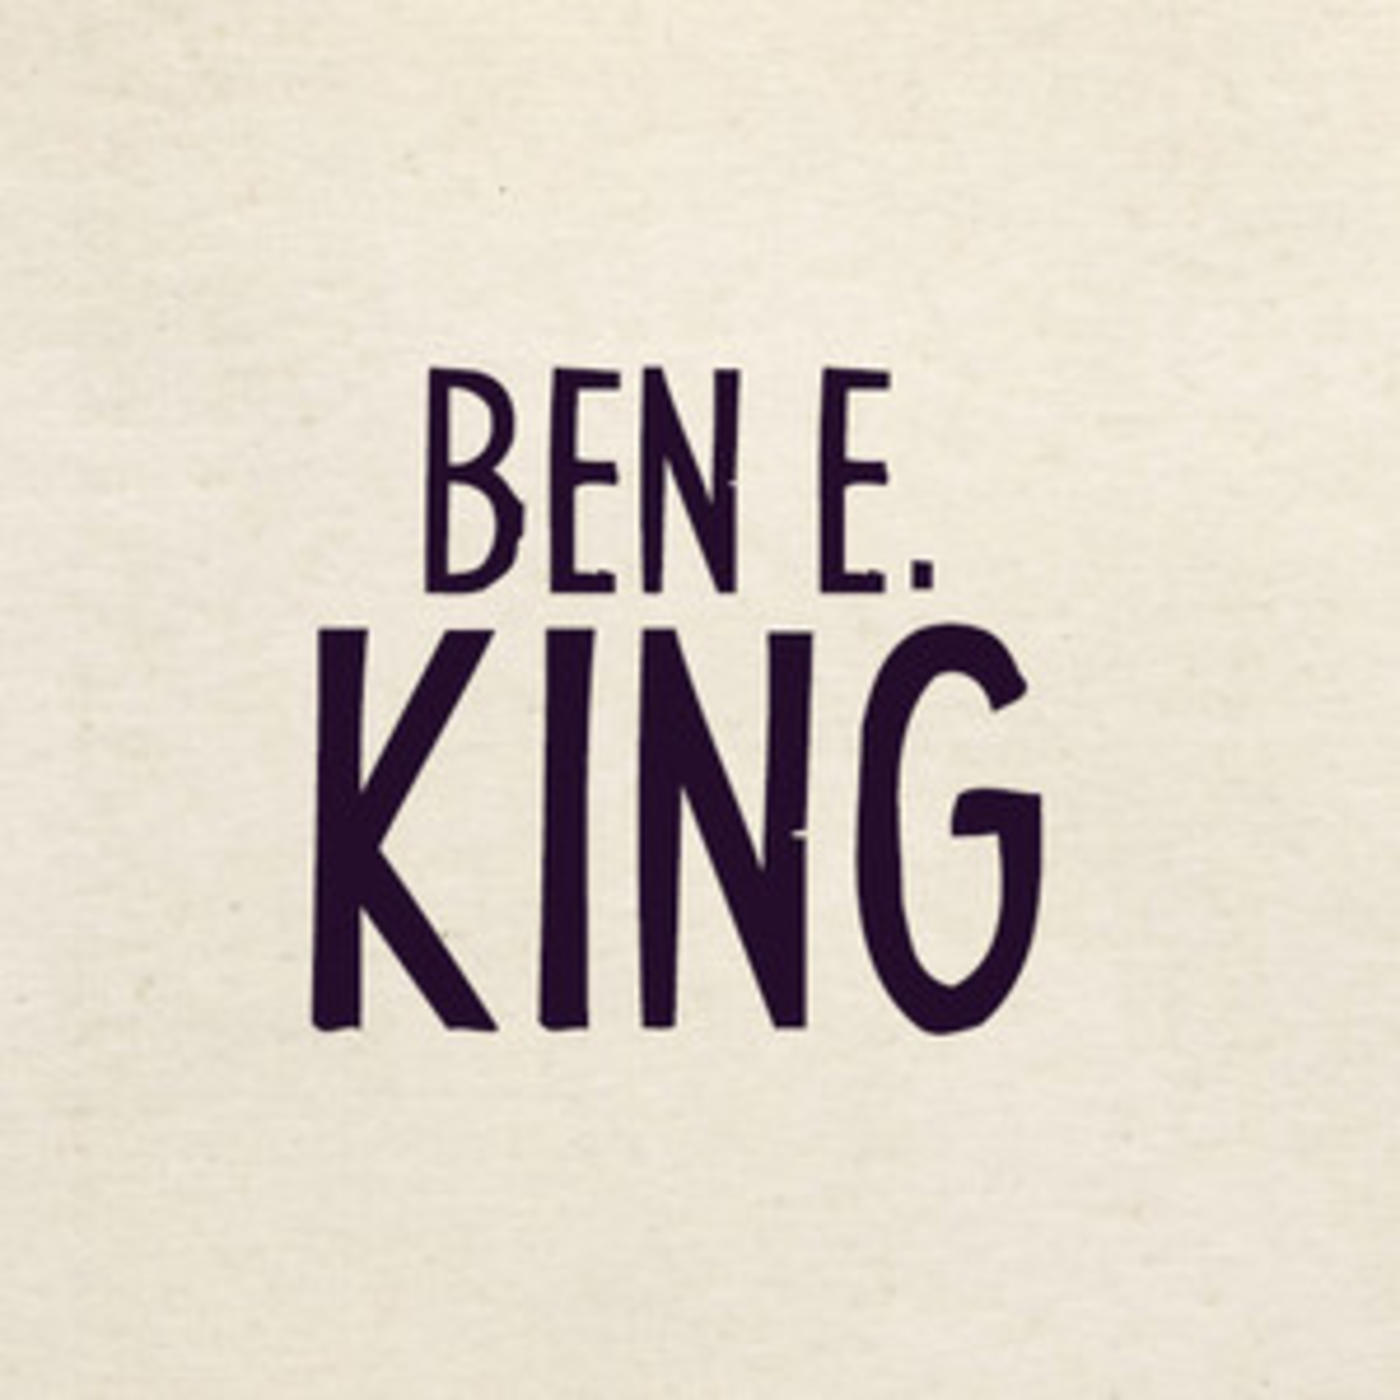 Ben E. King - Official Playlist - Stand By Me, This Magic Moment, Will You Still Love Me Tomorrow